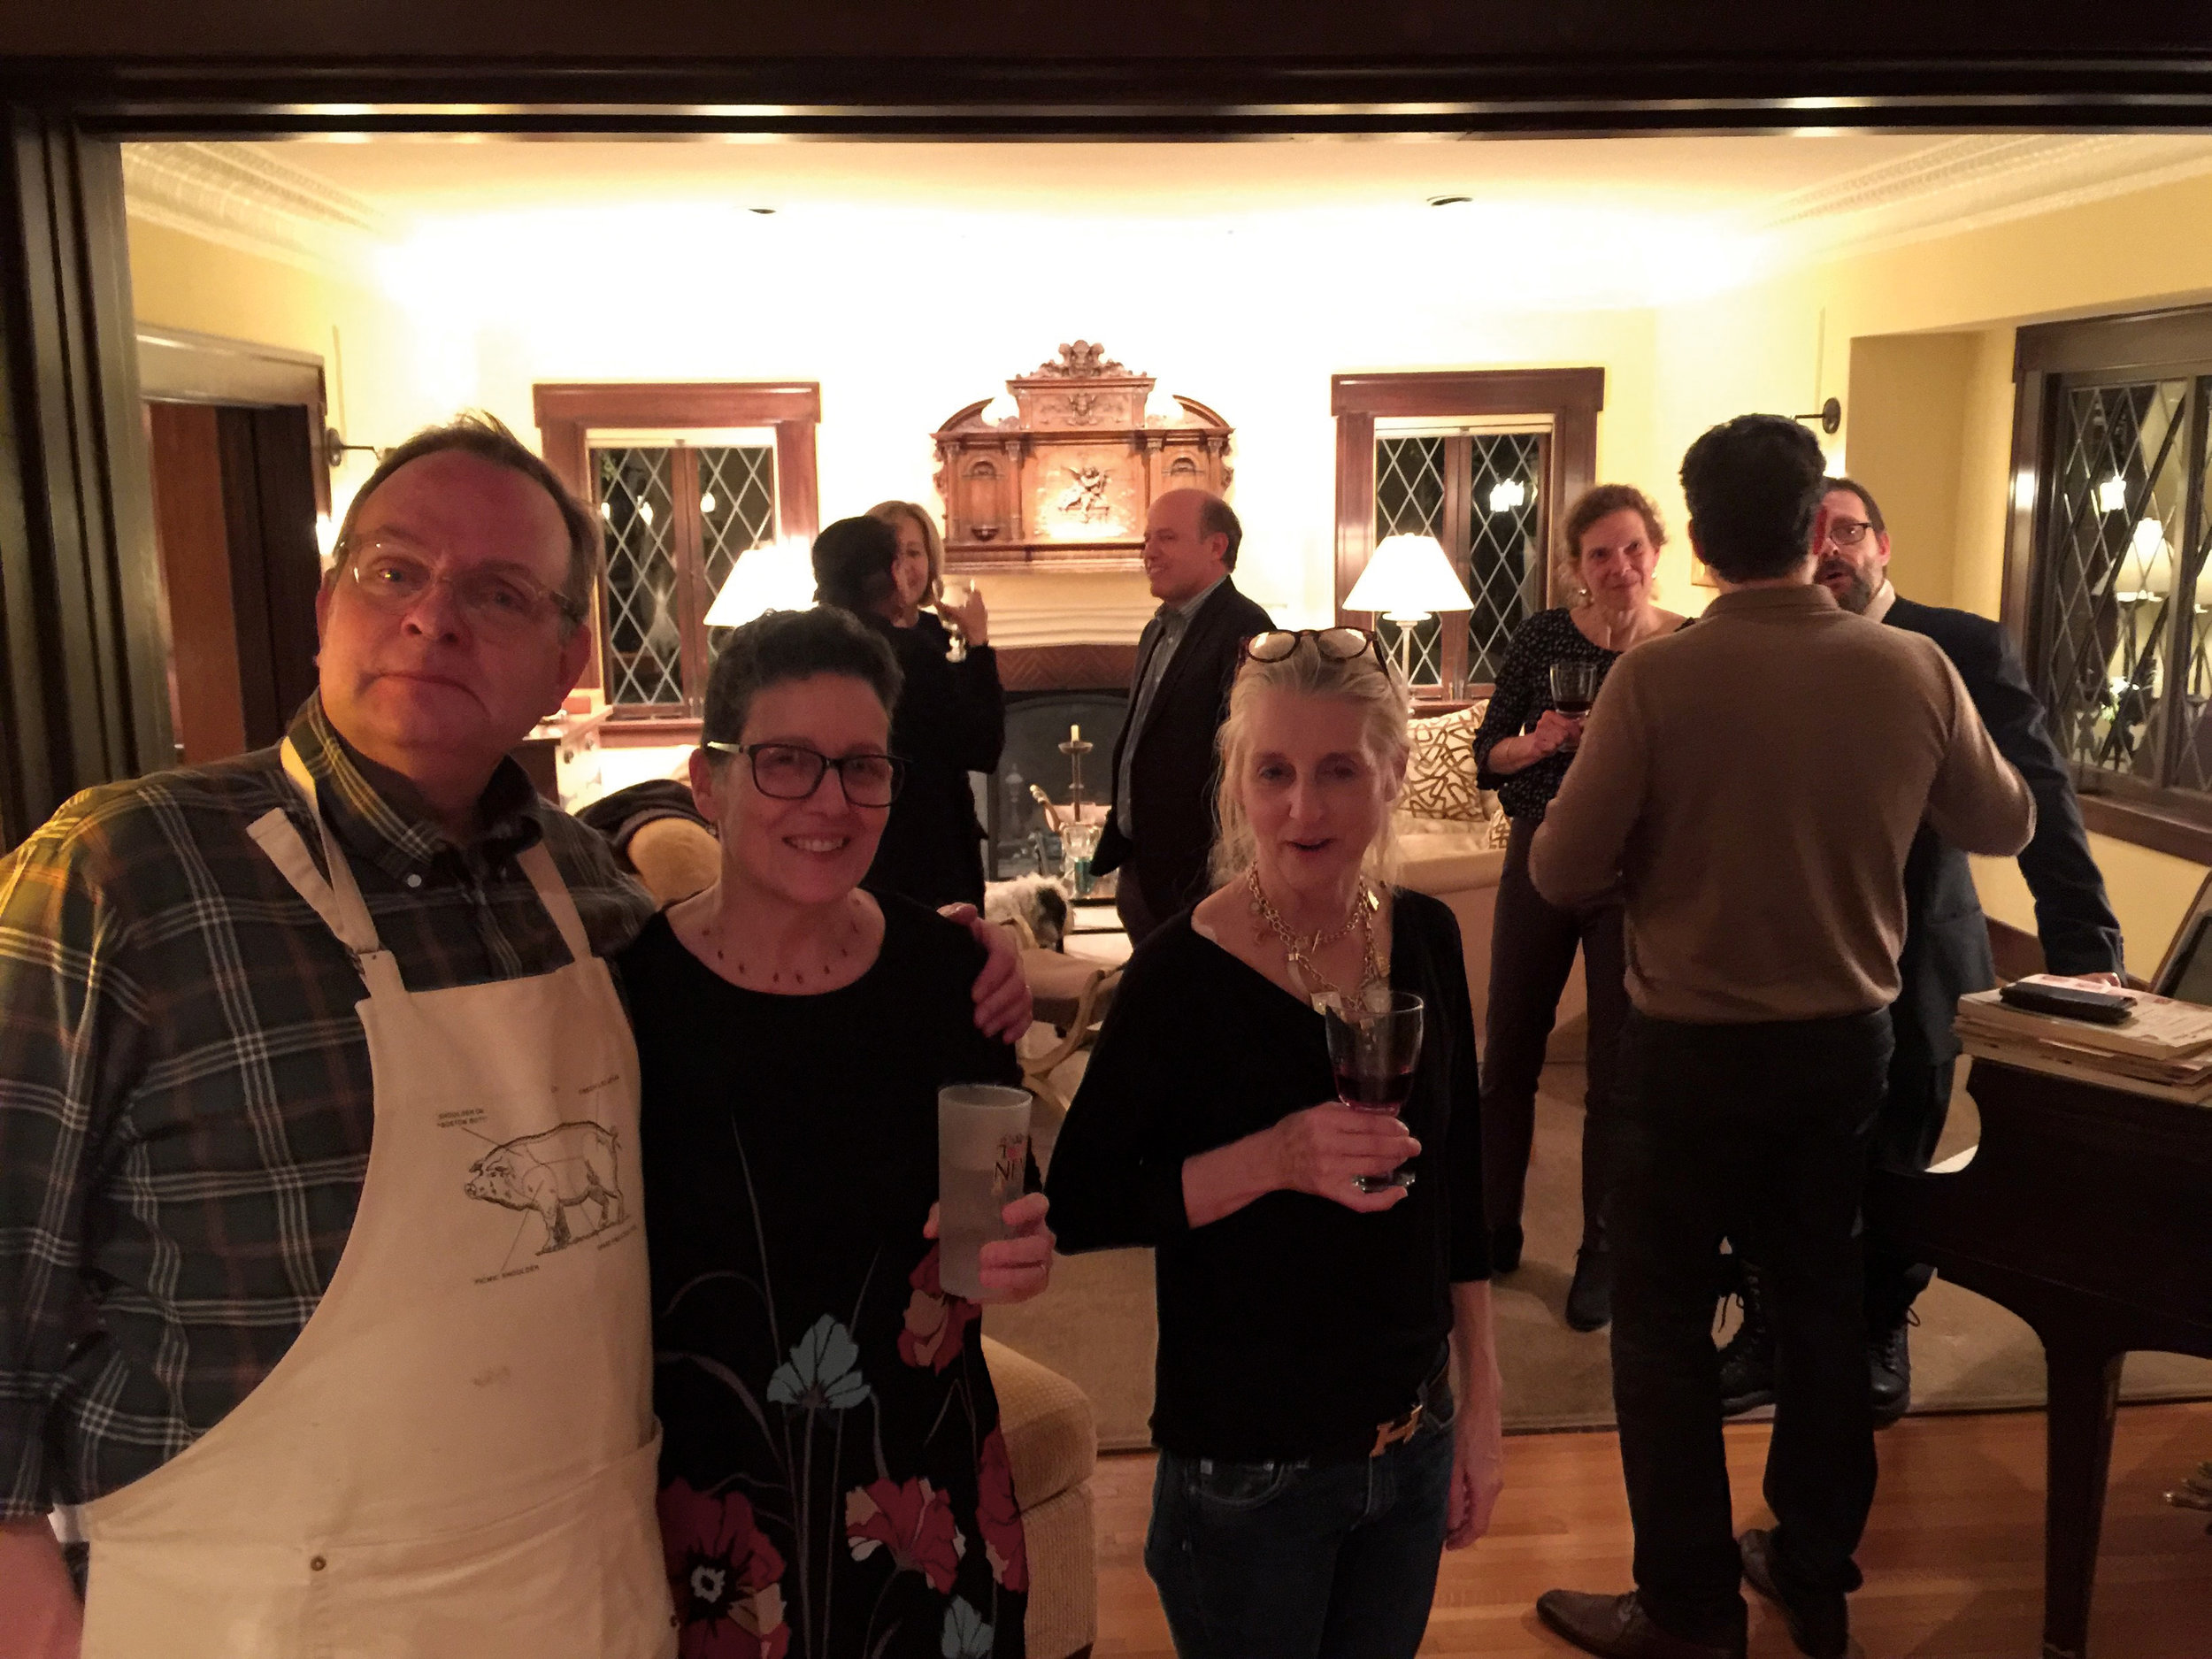 (L. to r.) Todd Purdum '78, Els Collins '78, and Electra McDowell Lang '78 defy Jon Sweet '78 to take their picture at Todd's March dinner party in L.A., while other form members carry on in the background, oblivious.